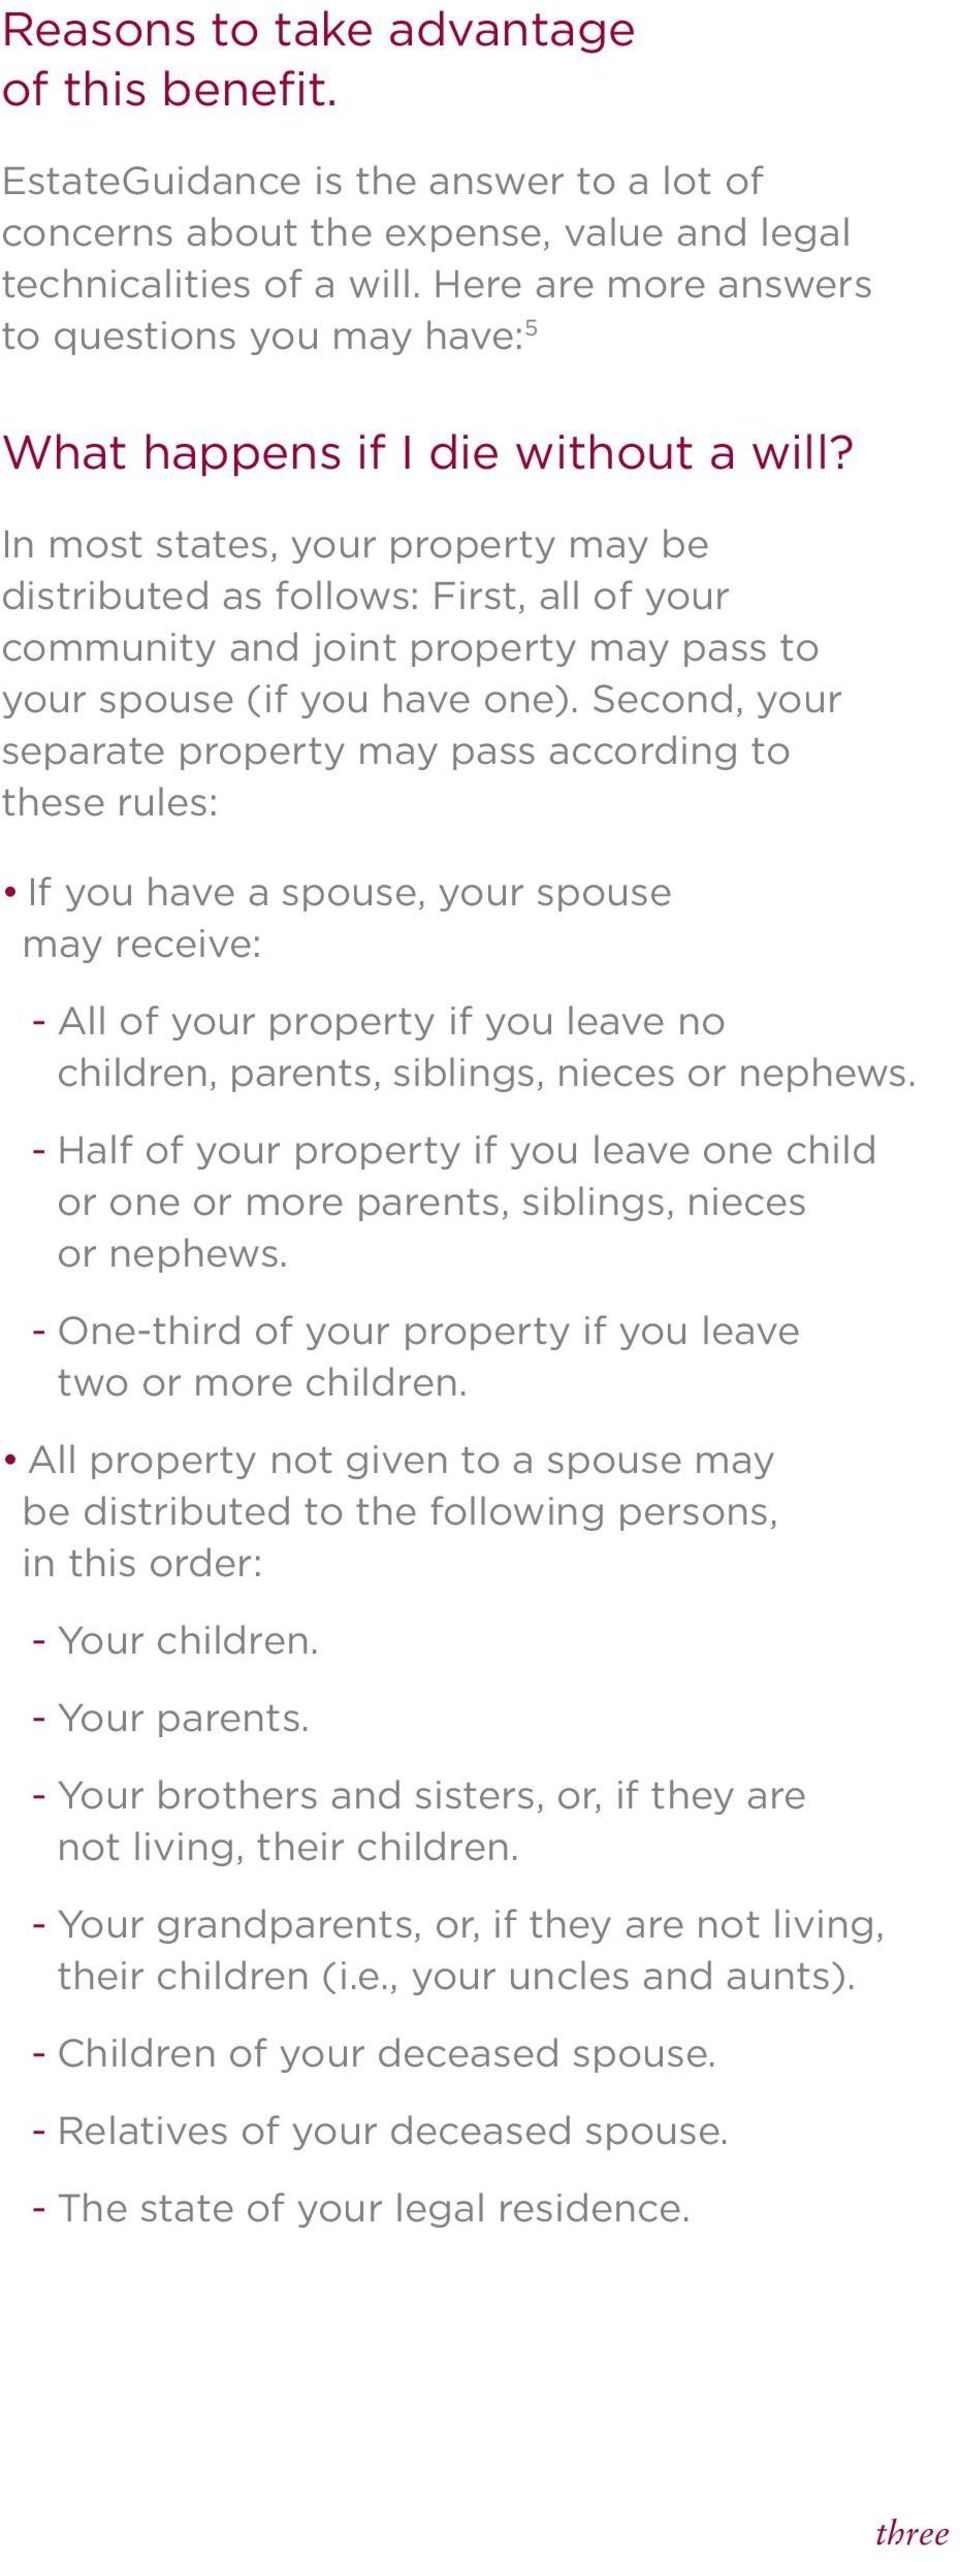 In most states, your property may be distributed as follows: First, all of your community and joint property may pass to your spouse (if you have one).